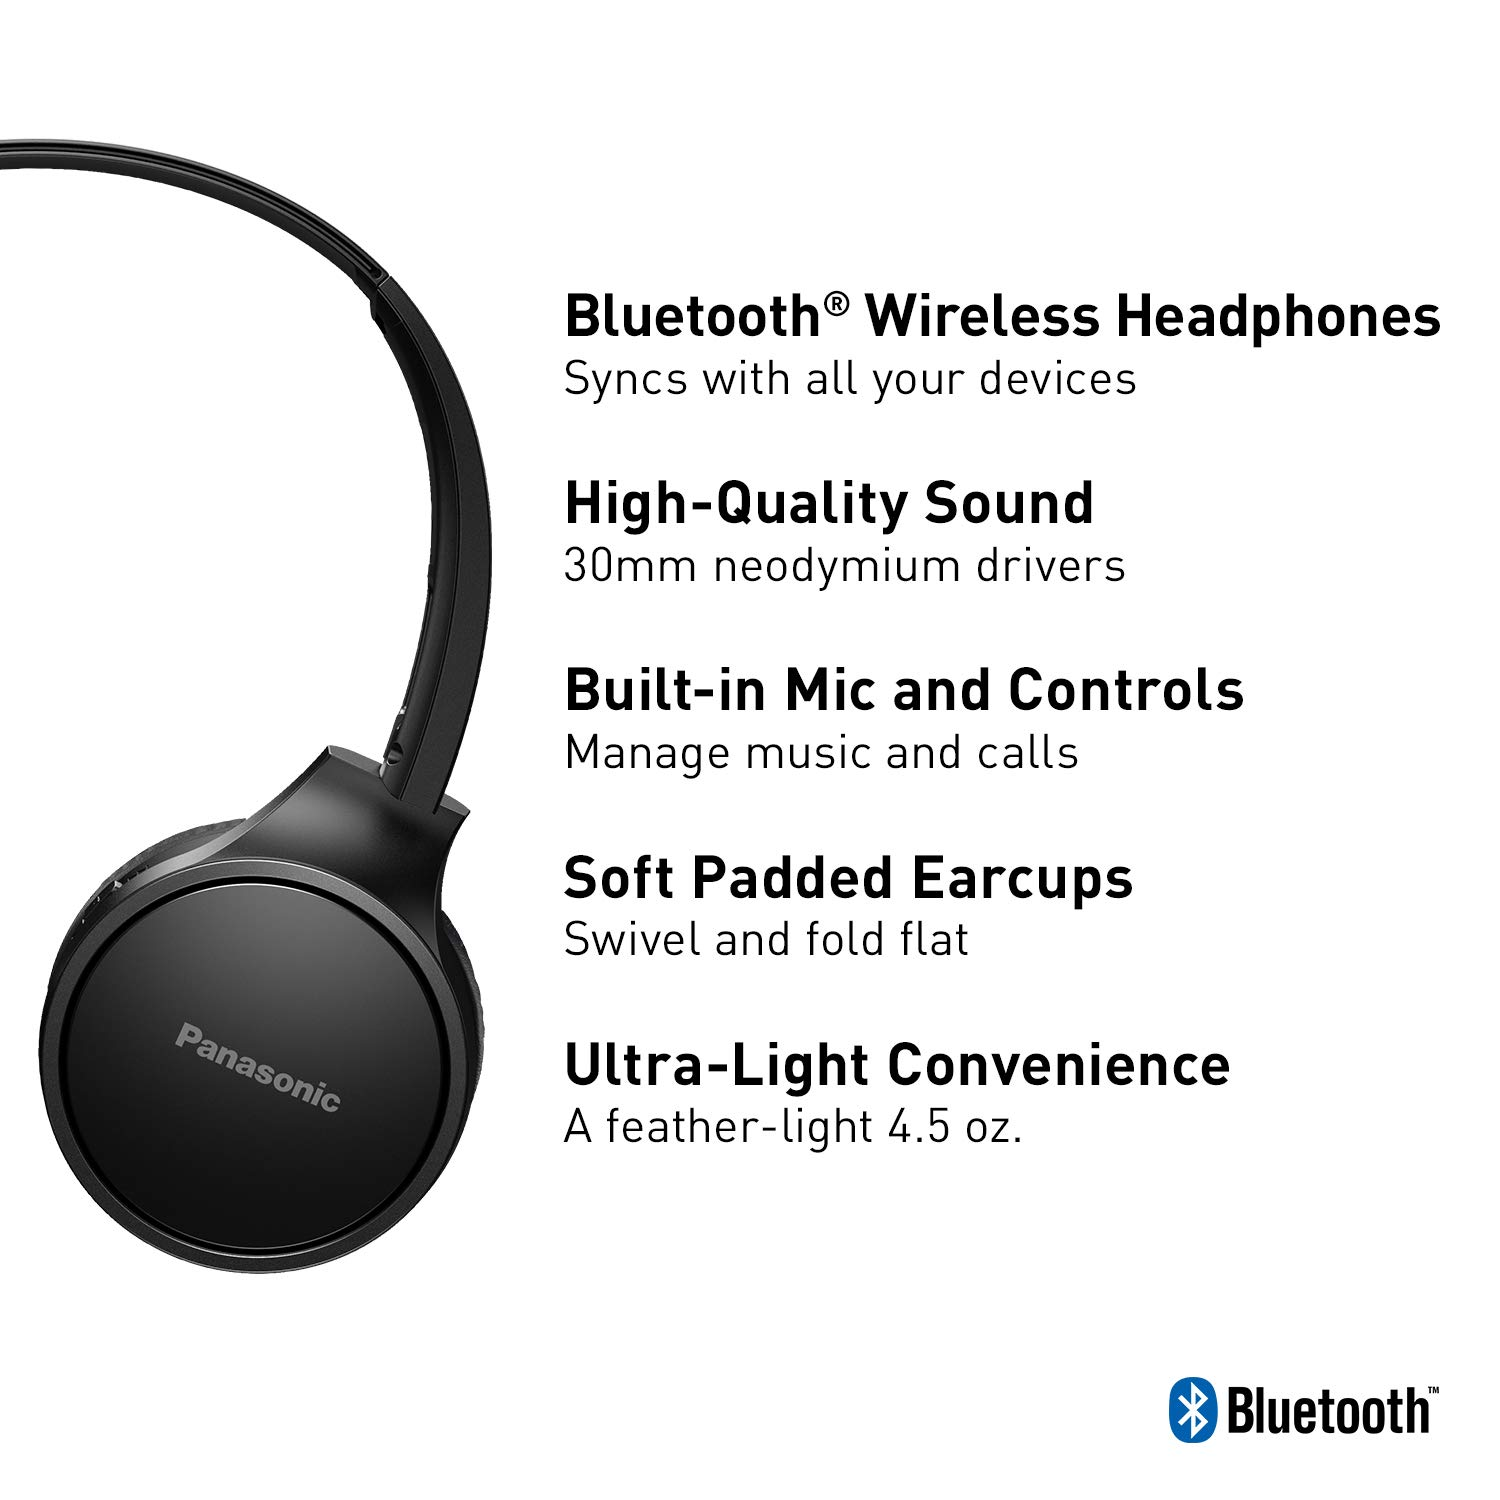 Panasonic Bluetooth Wireless Headphones With Microphone Diagram Also Telephone Headset Wiring On Conection And Call Volume Controller Rp Hf400b K Ear Black Electronics